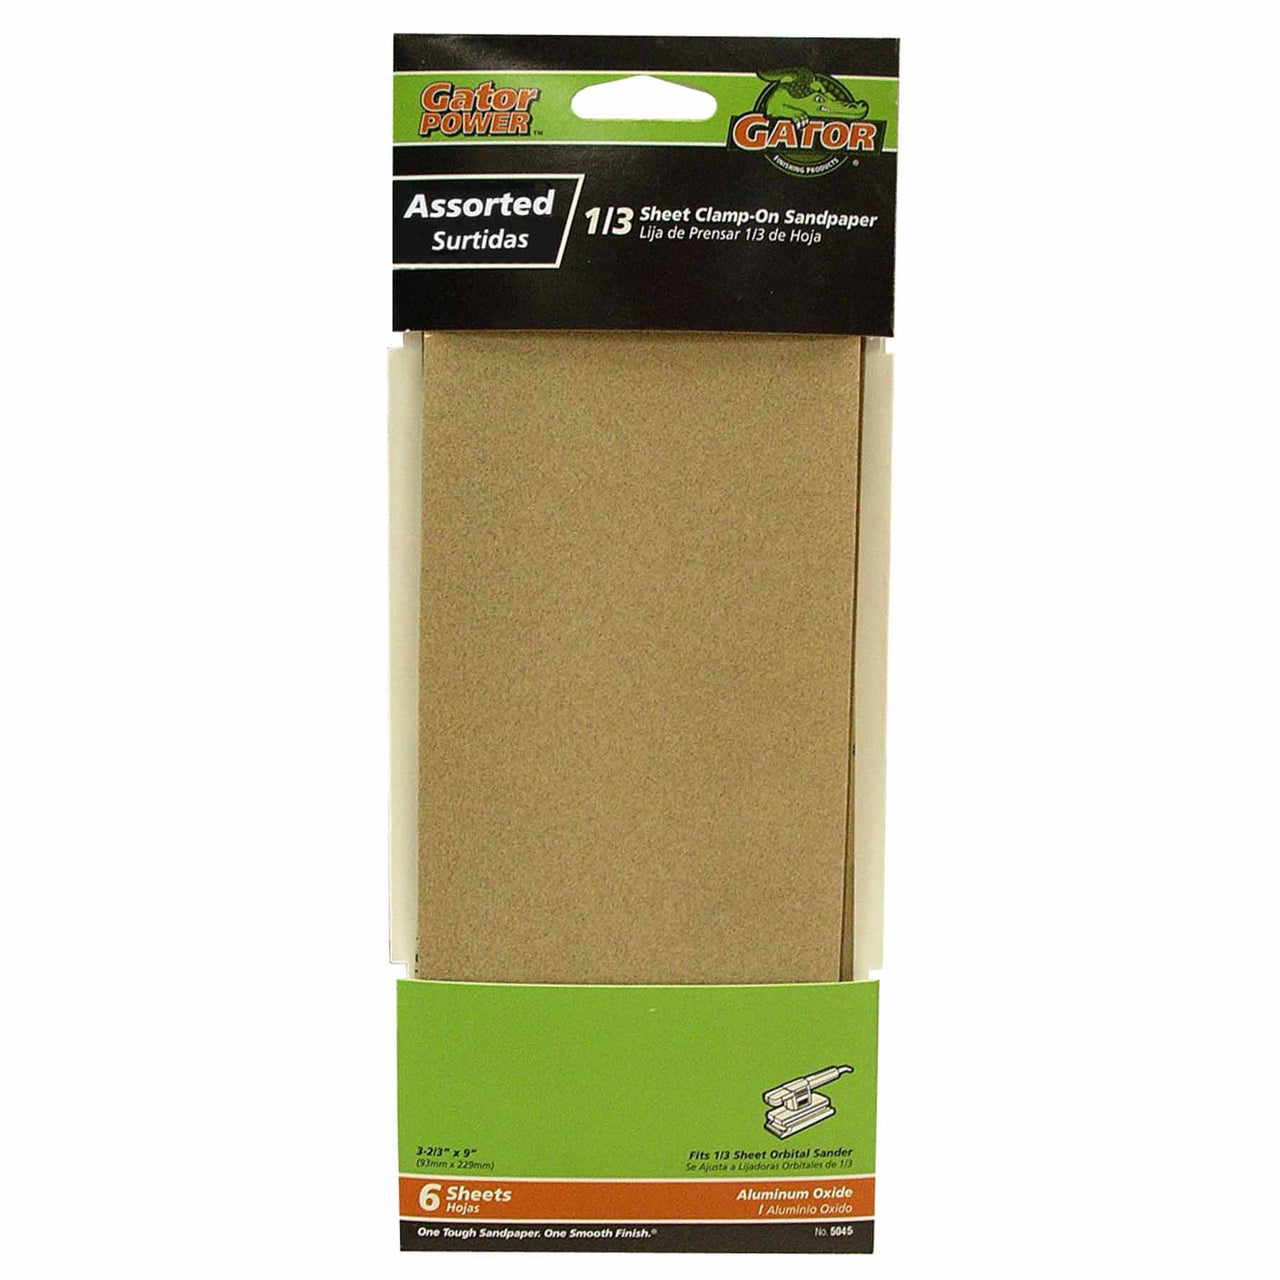 "Gator 5045 Multi-Purpose Sandpaper, Assorted Grits, 3-2/3"" x 9"""